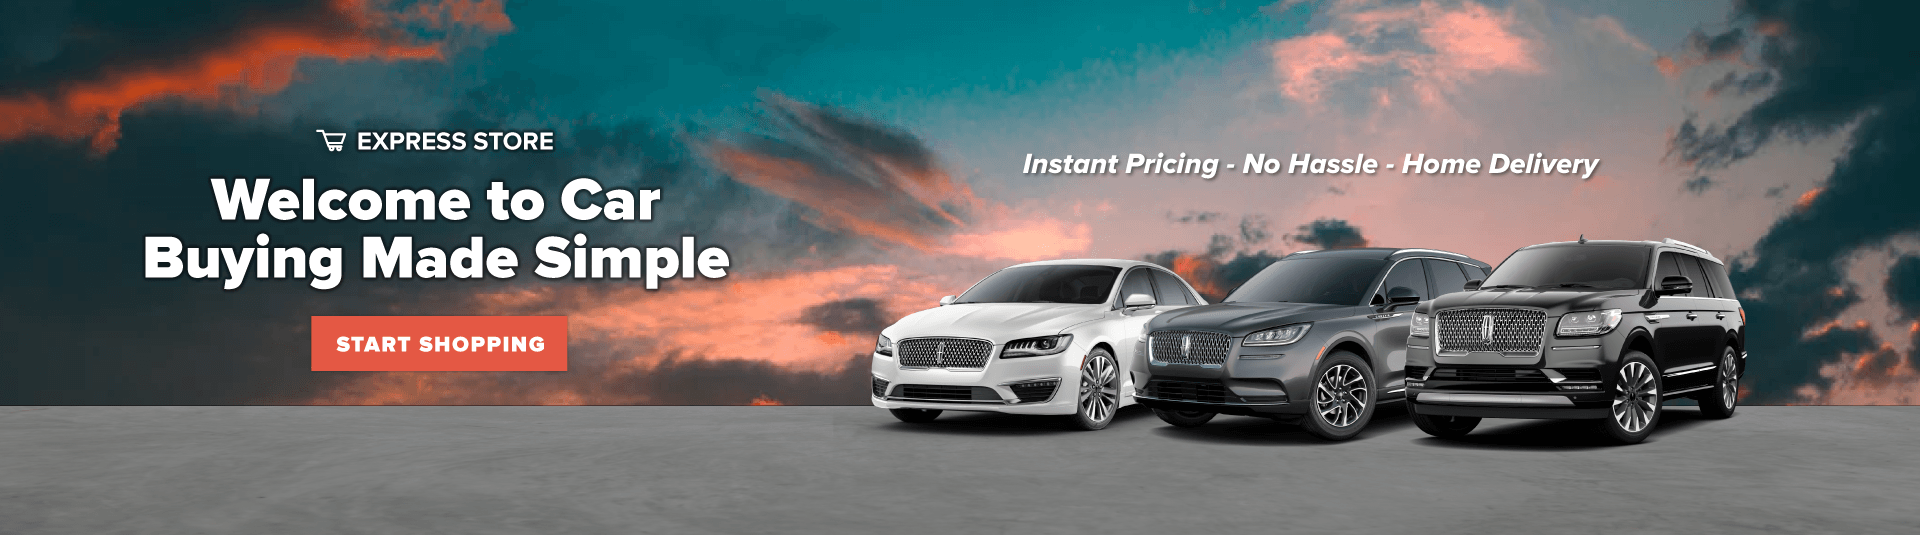 Bayfield_Lincoln_Barrie_Express_Shopping_Buy_Car_Online